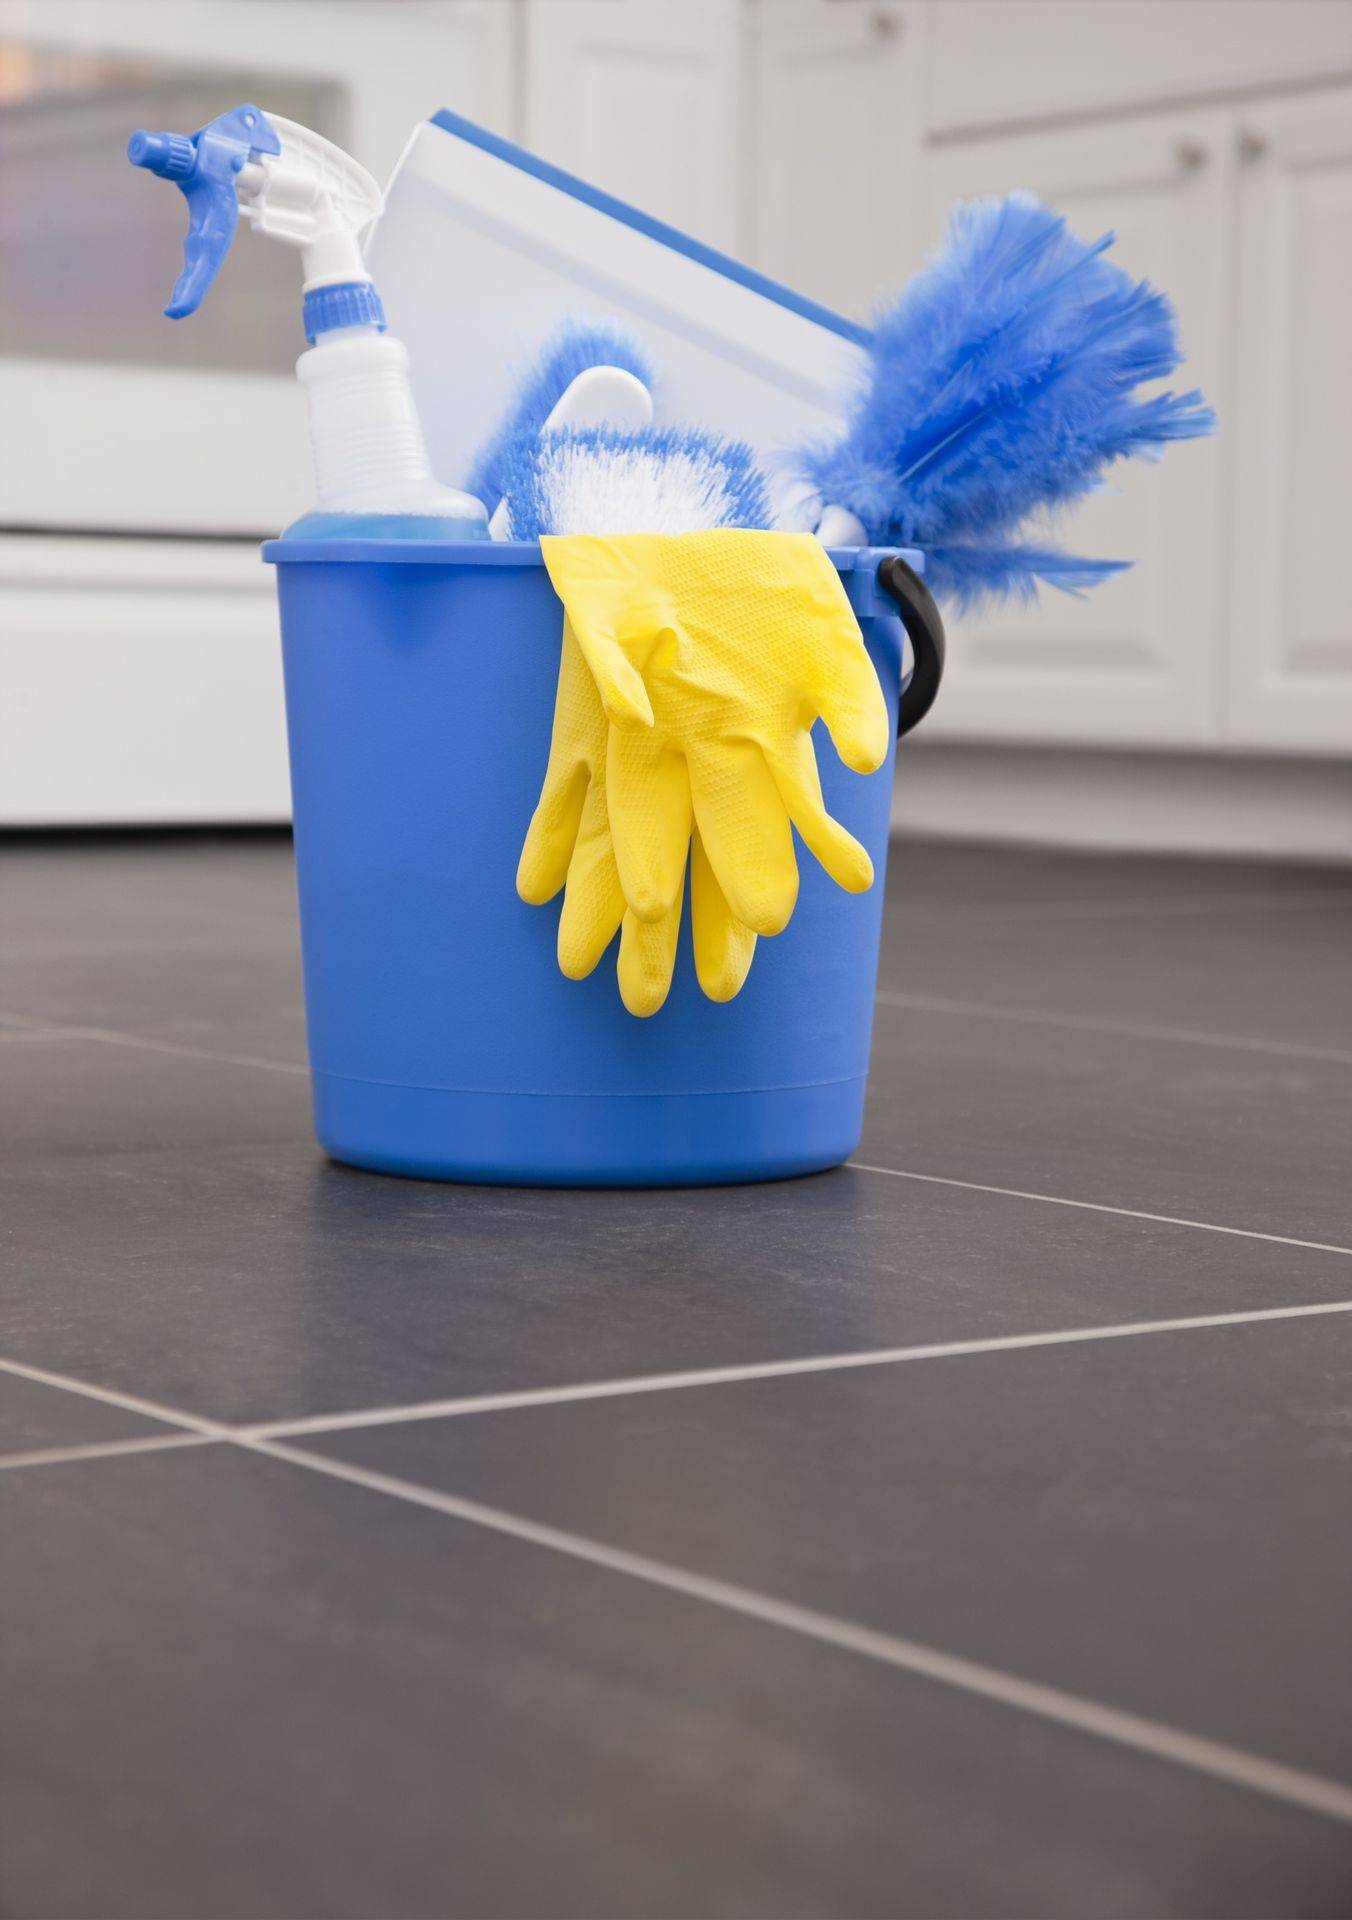 Housecleaning supplies and equipment